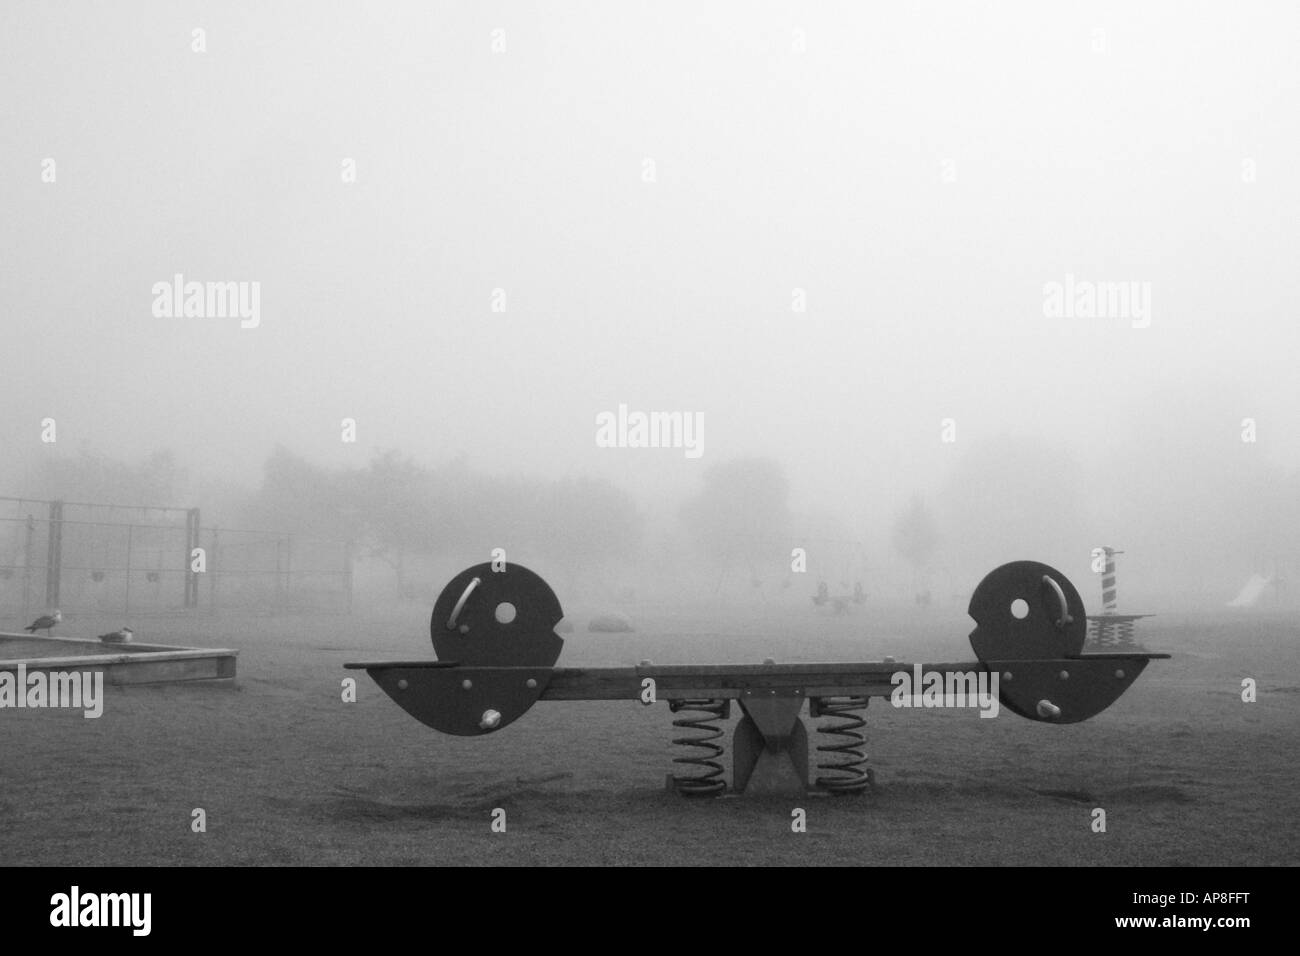 Empty playground on a foggy morning - Stock Image